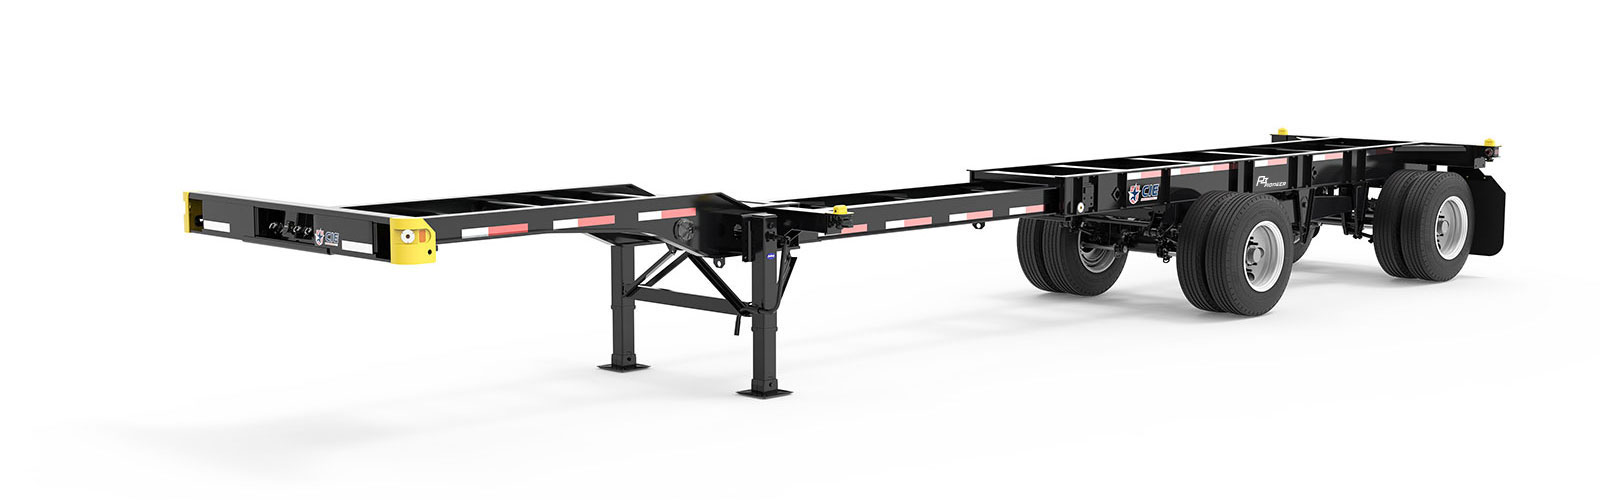 Pioneer 20/40 CityCombo WS-Tandem Literature Angle-View